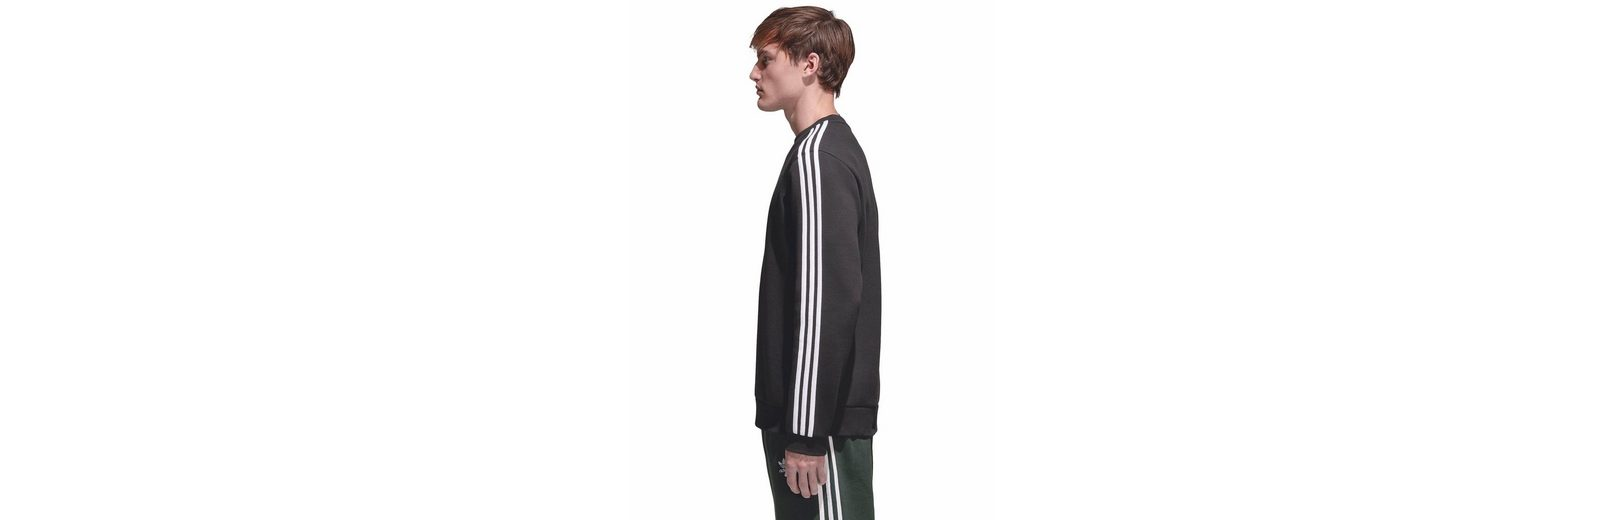 Günstiger Online-Shop Billige Wahl adidas Originals Sweatshirt CURATED CREW Q2 H5VgDpk